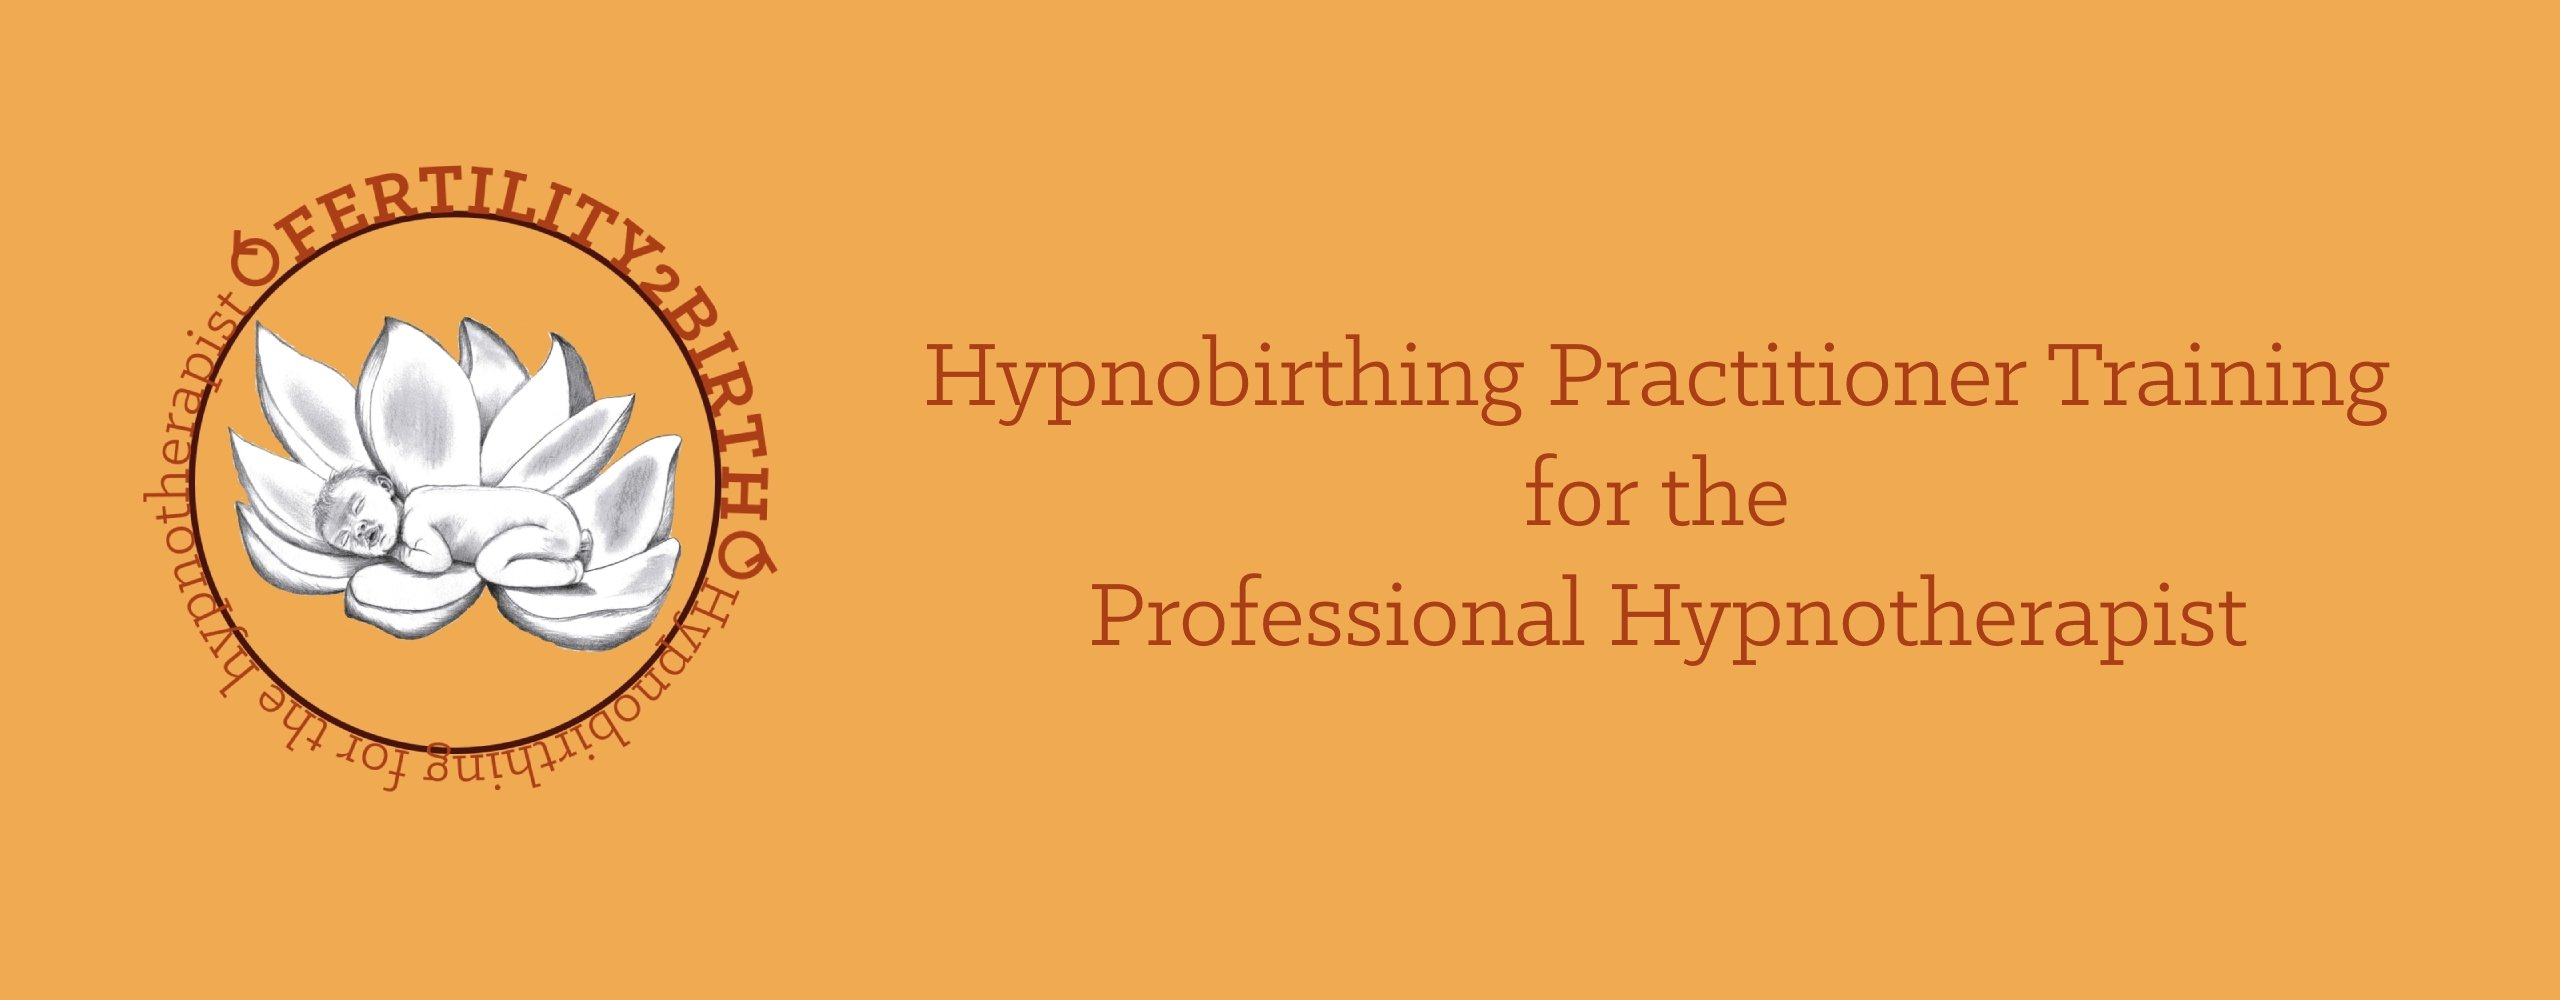 Hypnobirthing Practitioner Training for the Professional Hypnotherapist